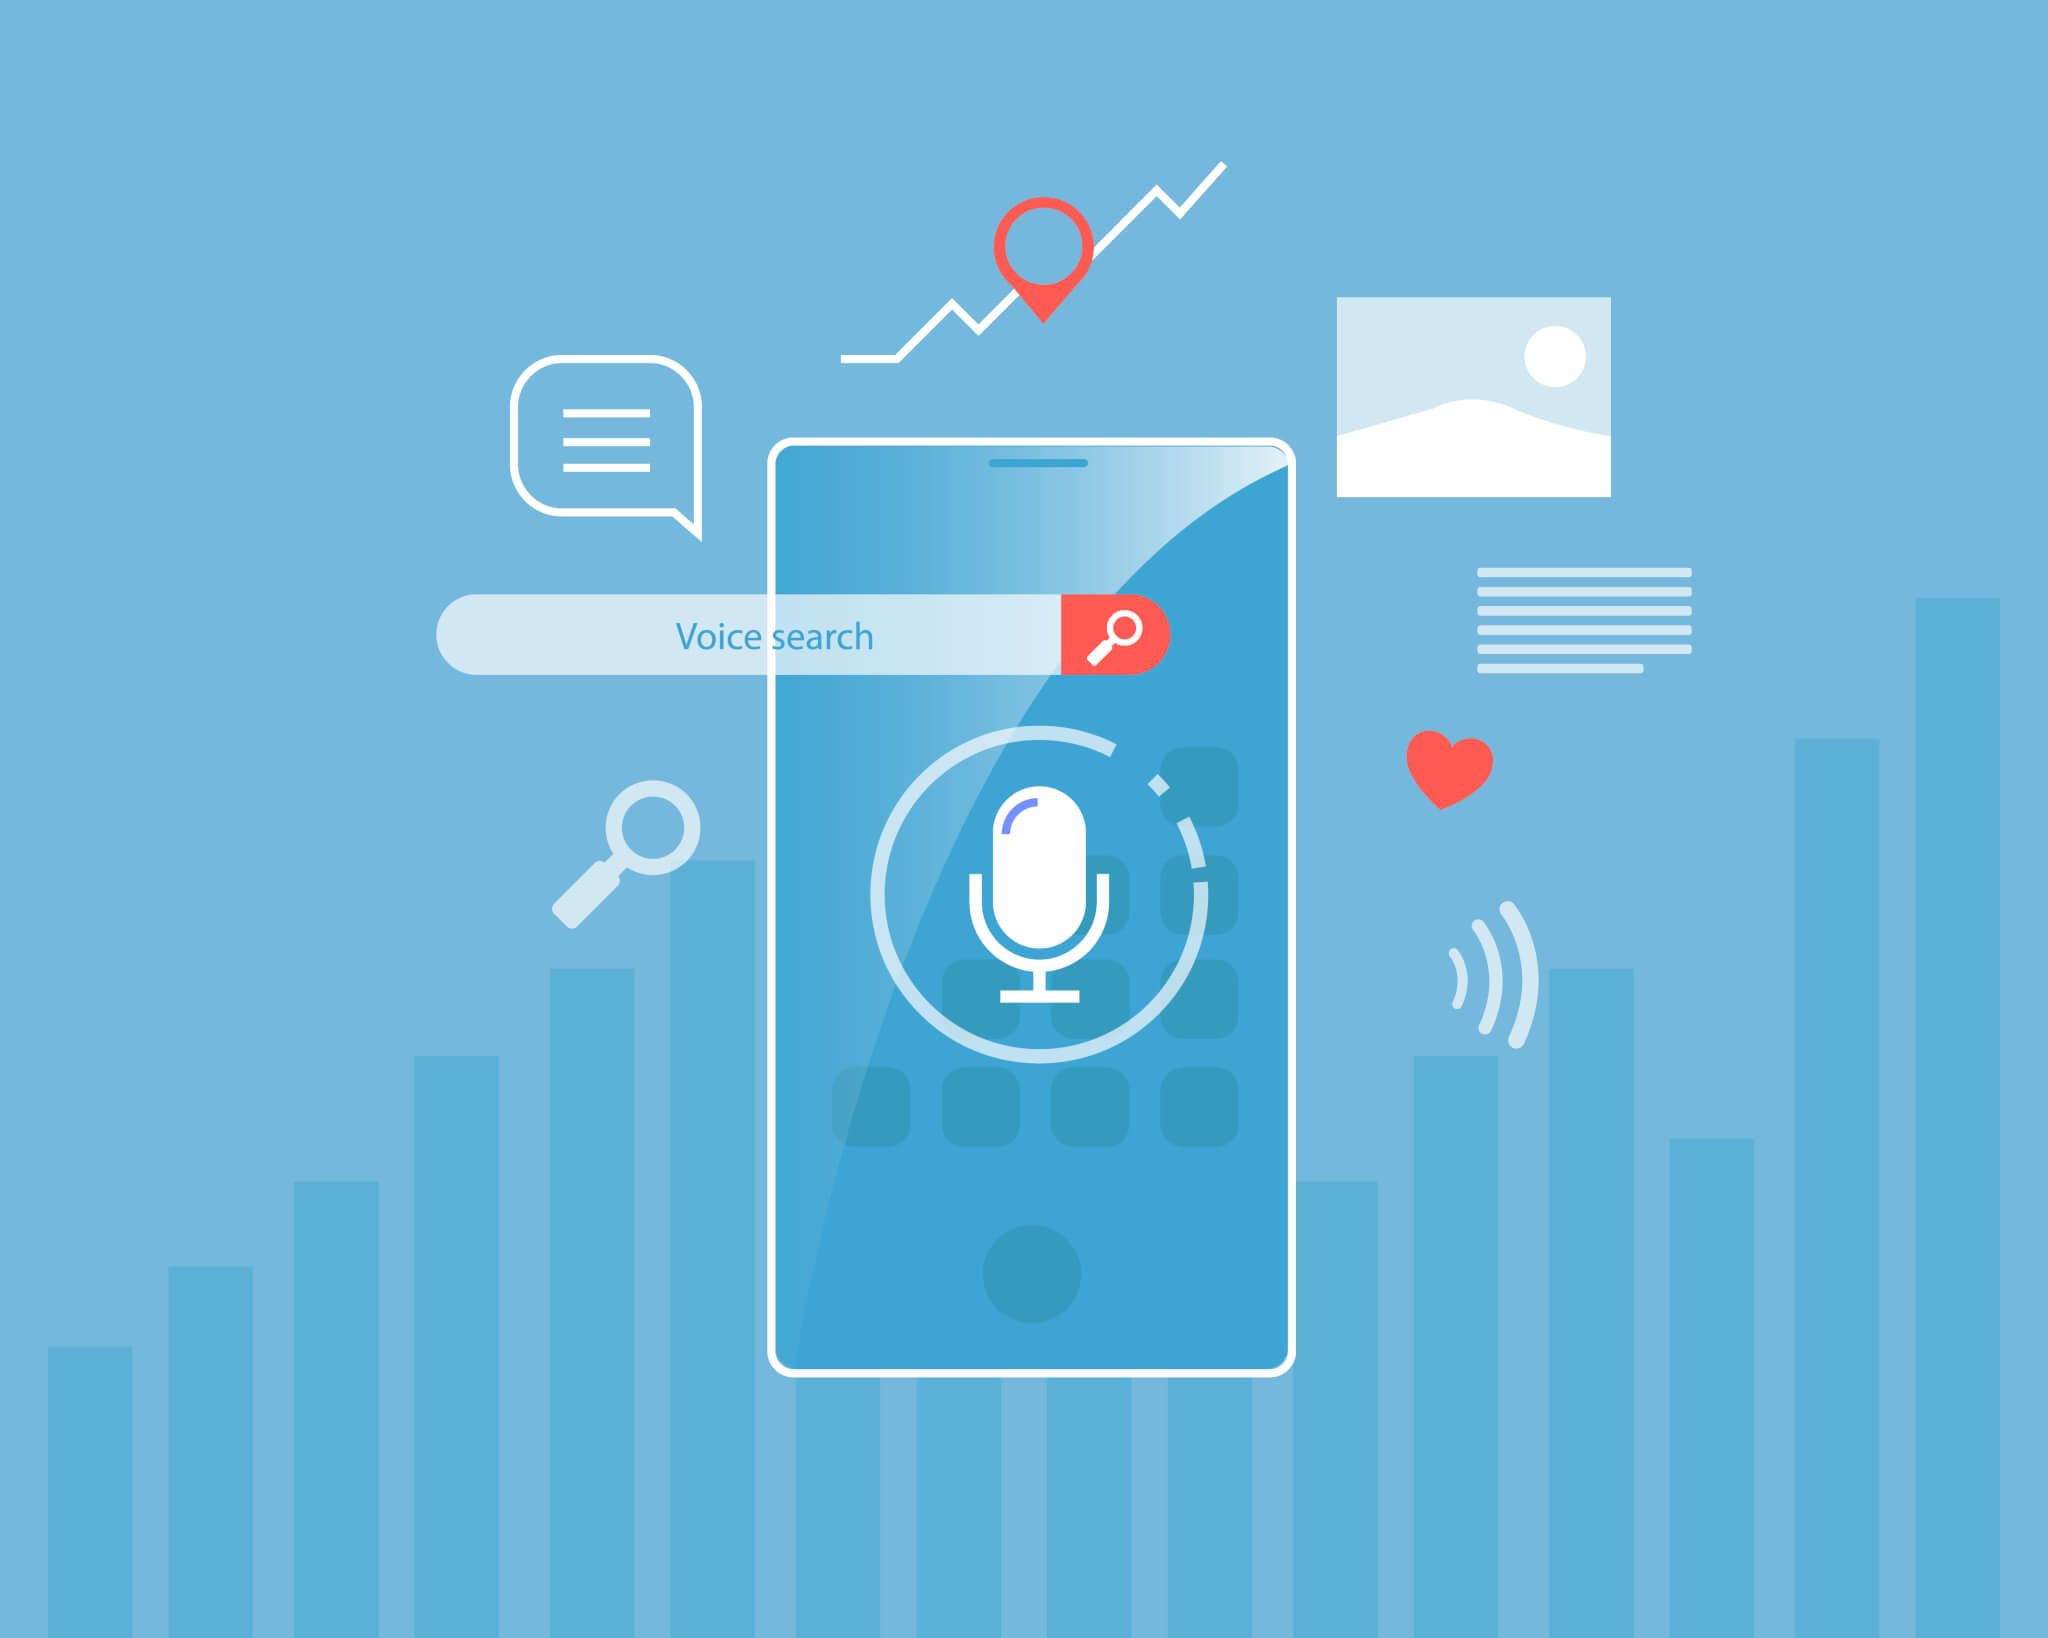 Voice Search Study: 80% of Voice Search Answer Are from Top 3 Organic Results